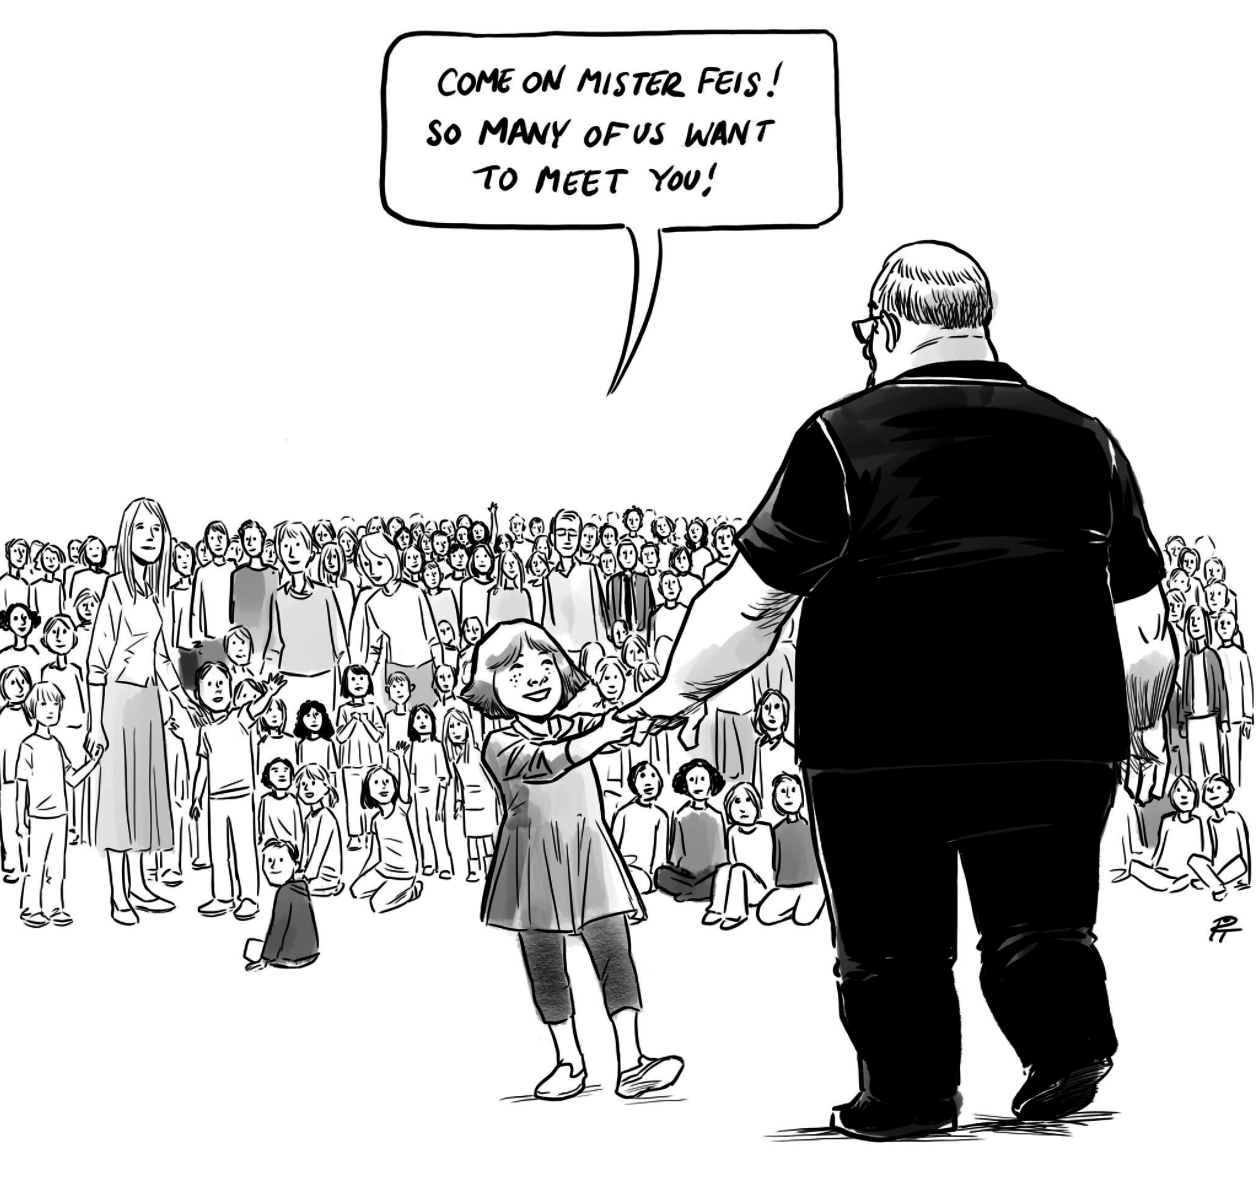 This Cartoon Depicting All The Victims Of School Shootings